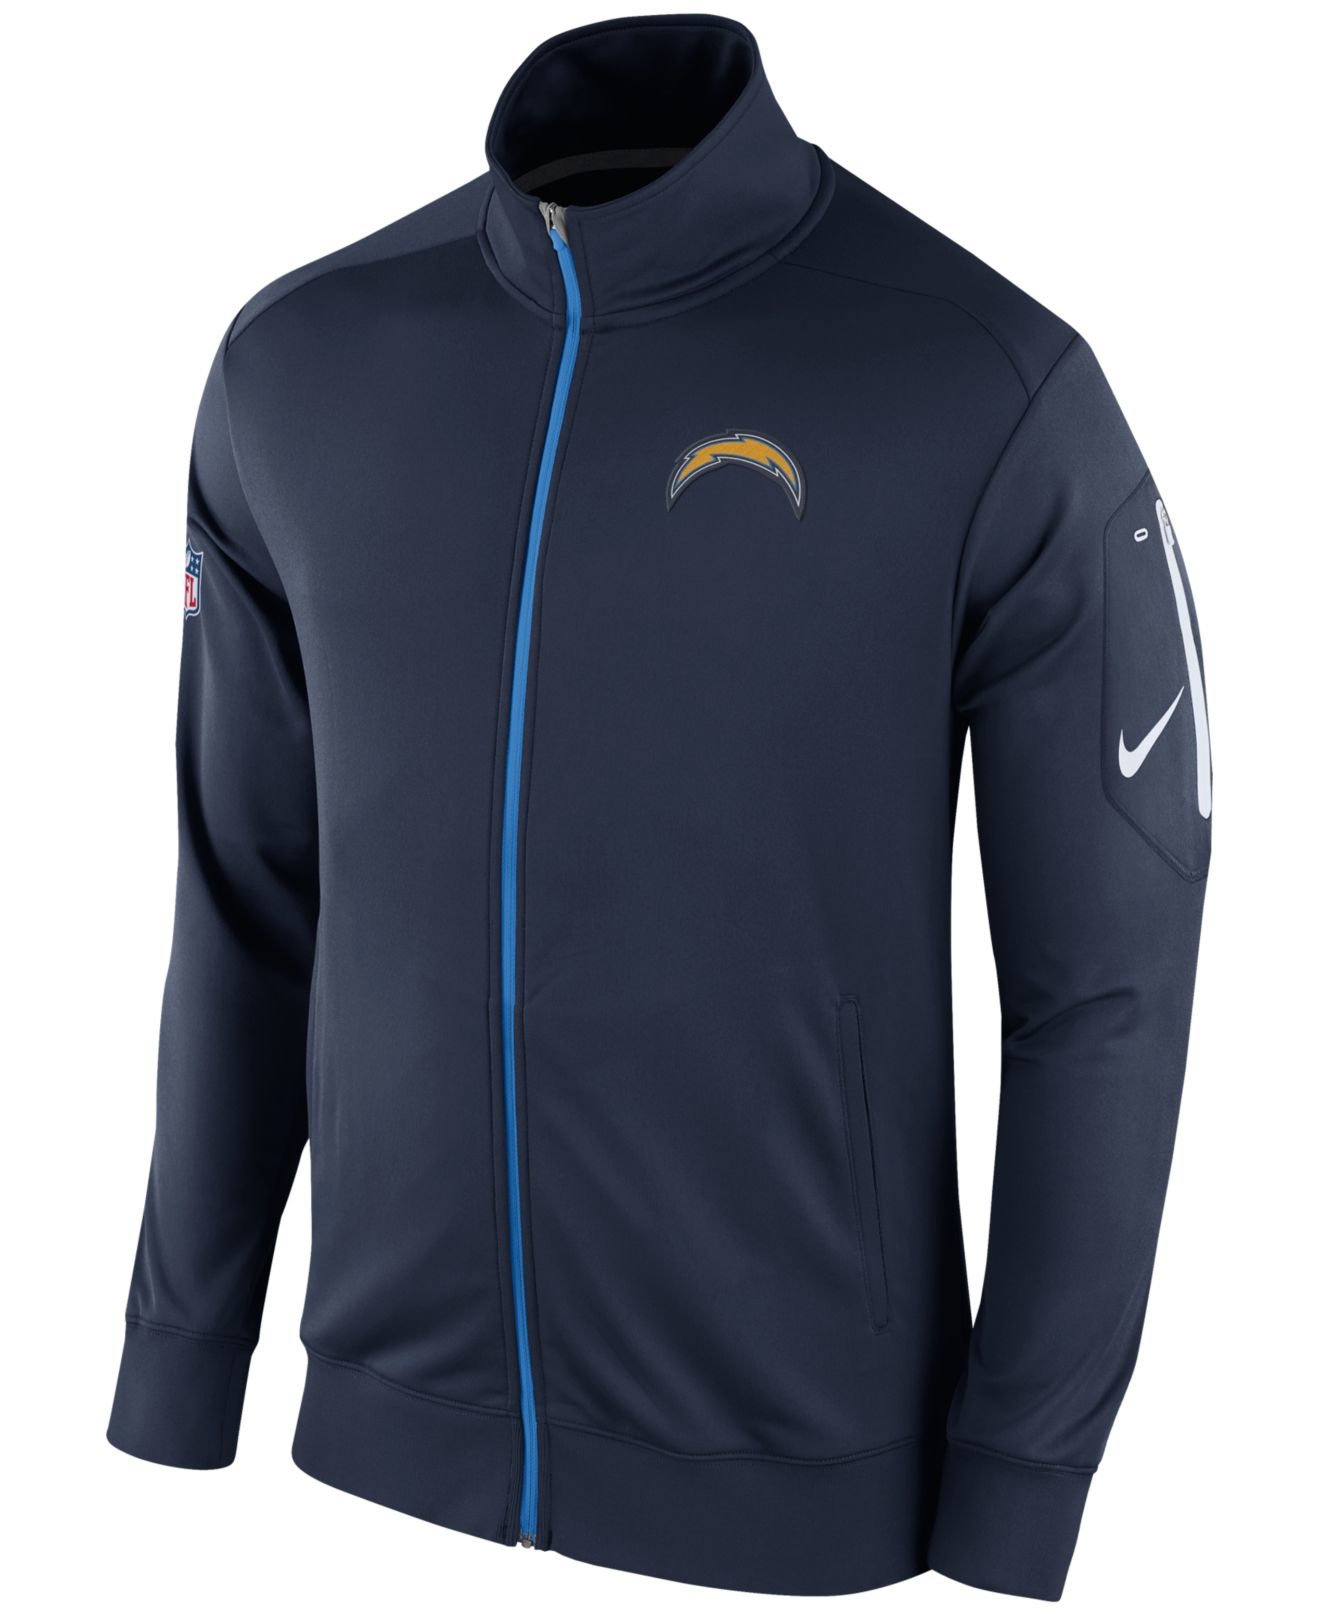 San Diego Chargers Clothing: Nike Men's San Diego Chargers Empower Jacket In Blue For